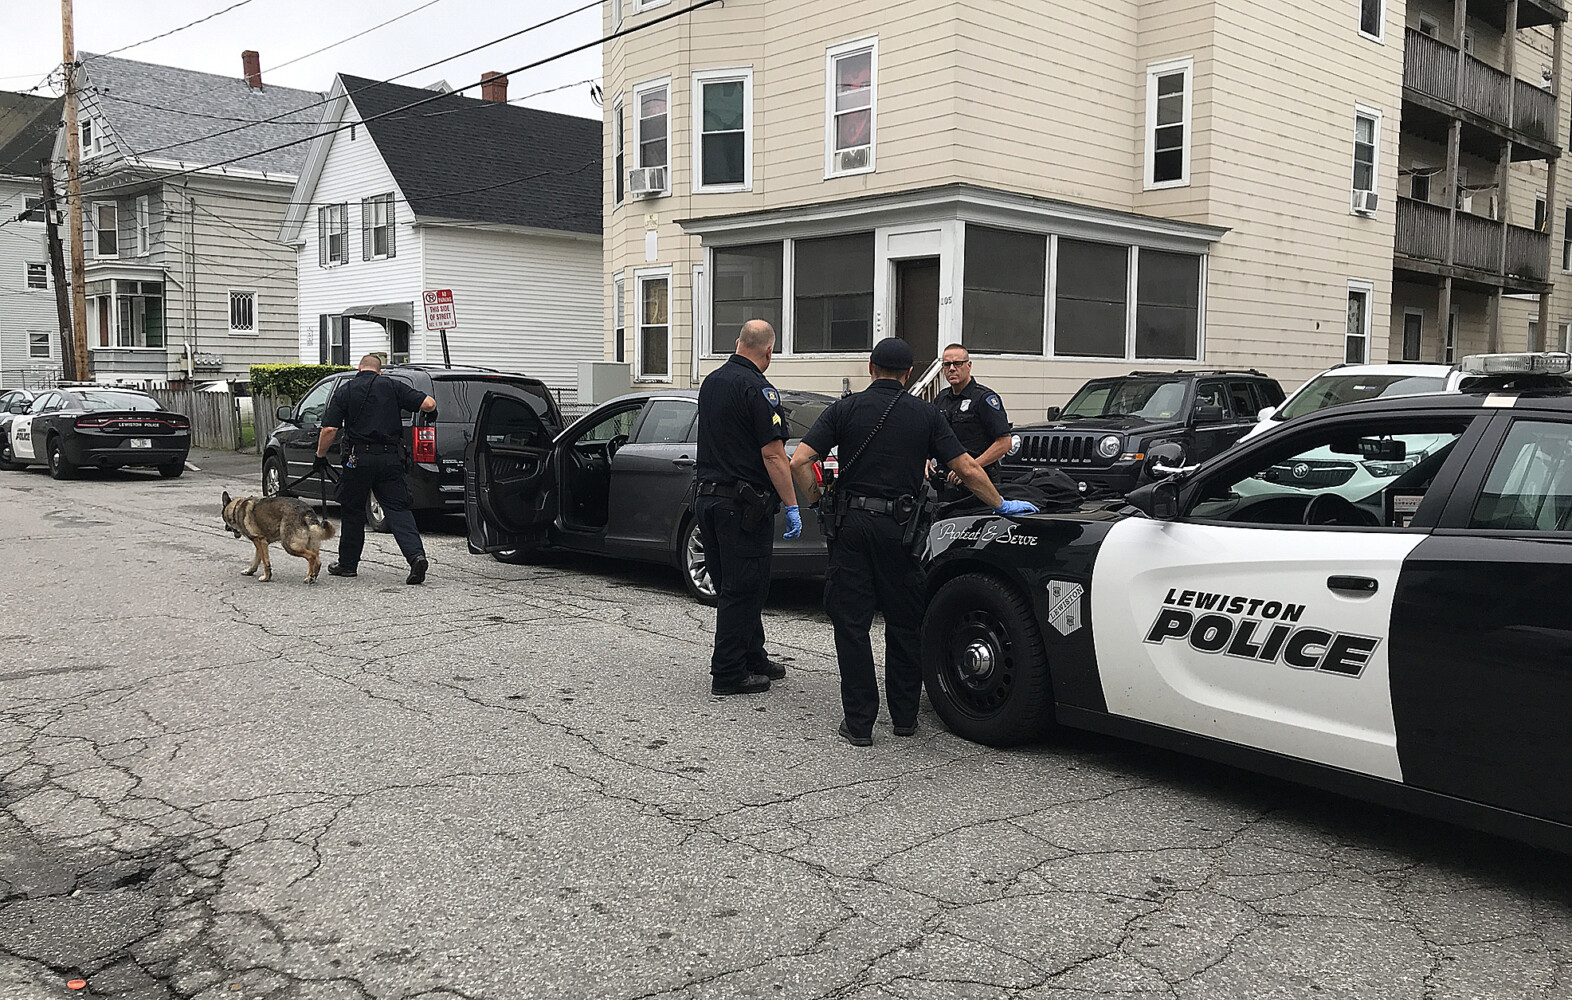 Study: Lewiston one of the worst cities for police - CentralMaine.com